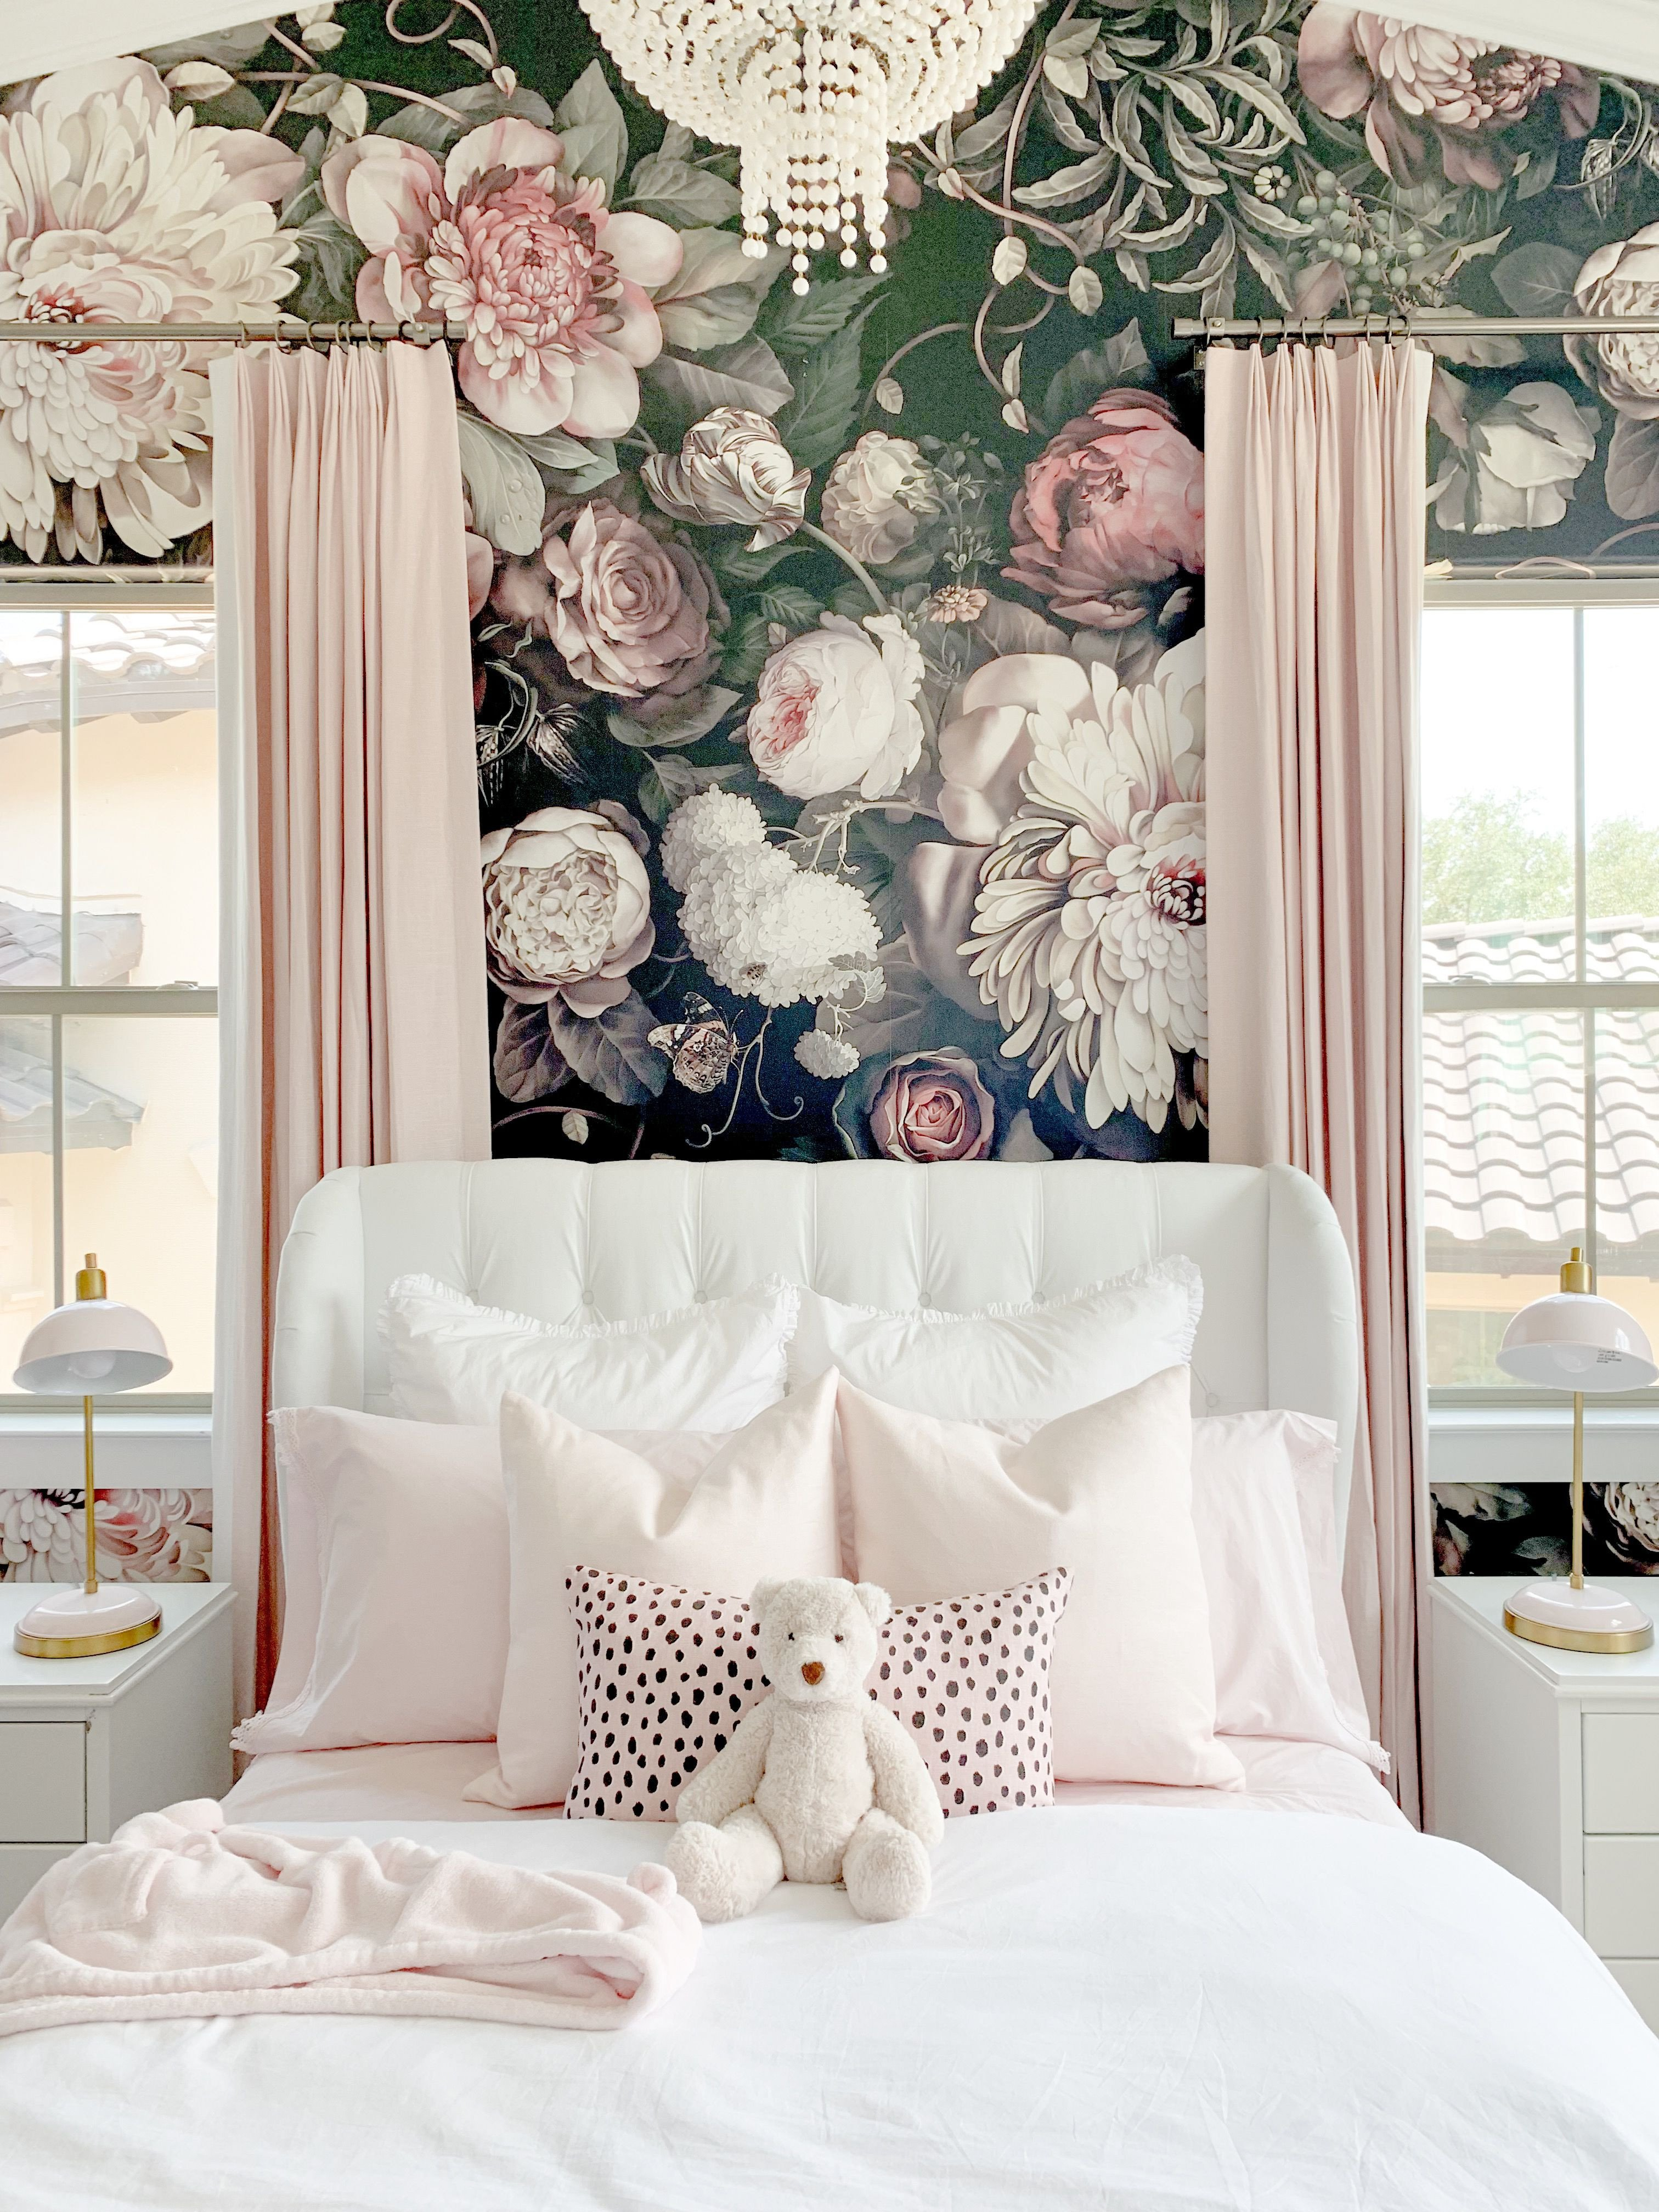 Chandelier for Teenage Girl Bedroom Fresh Blush Pink Bedroom with Floral Wallpaper A White Tufted